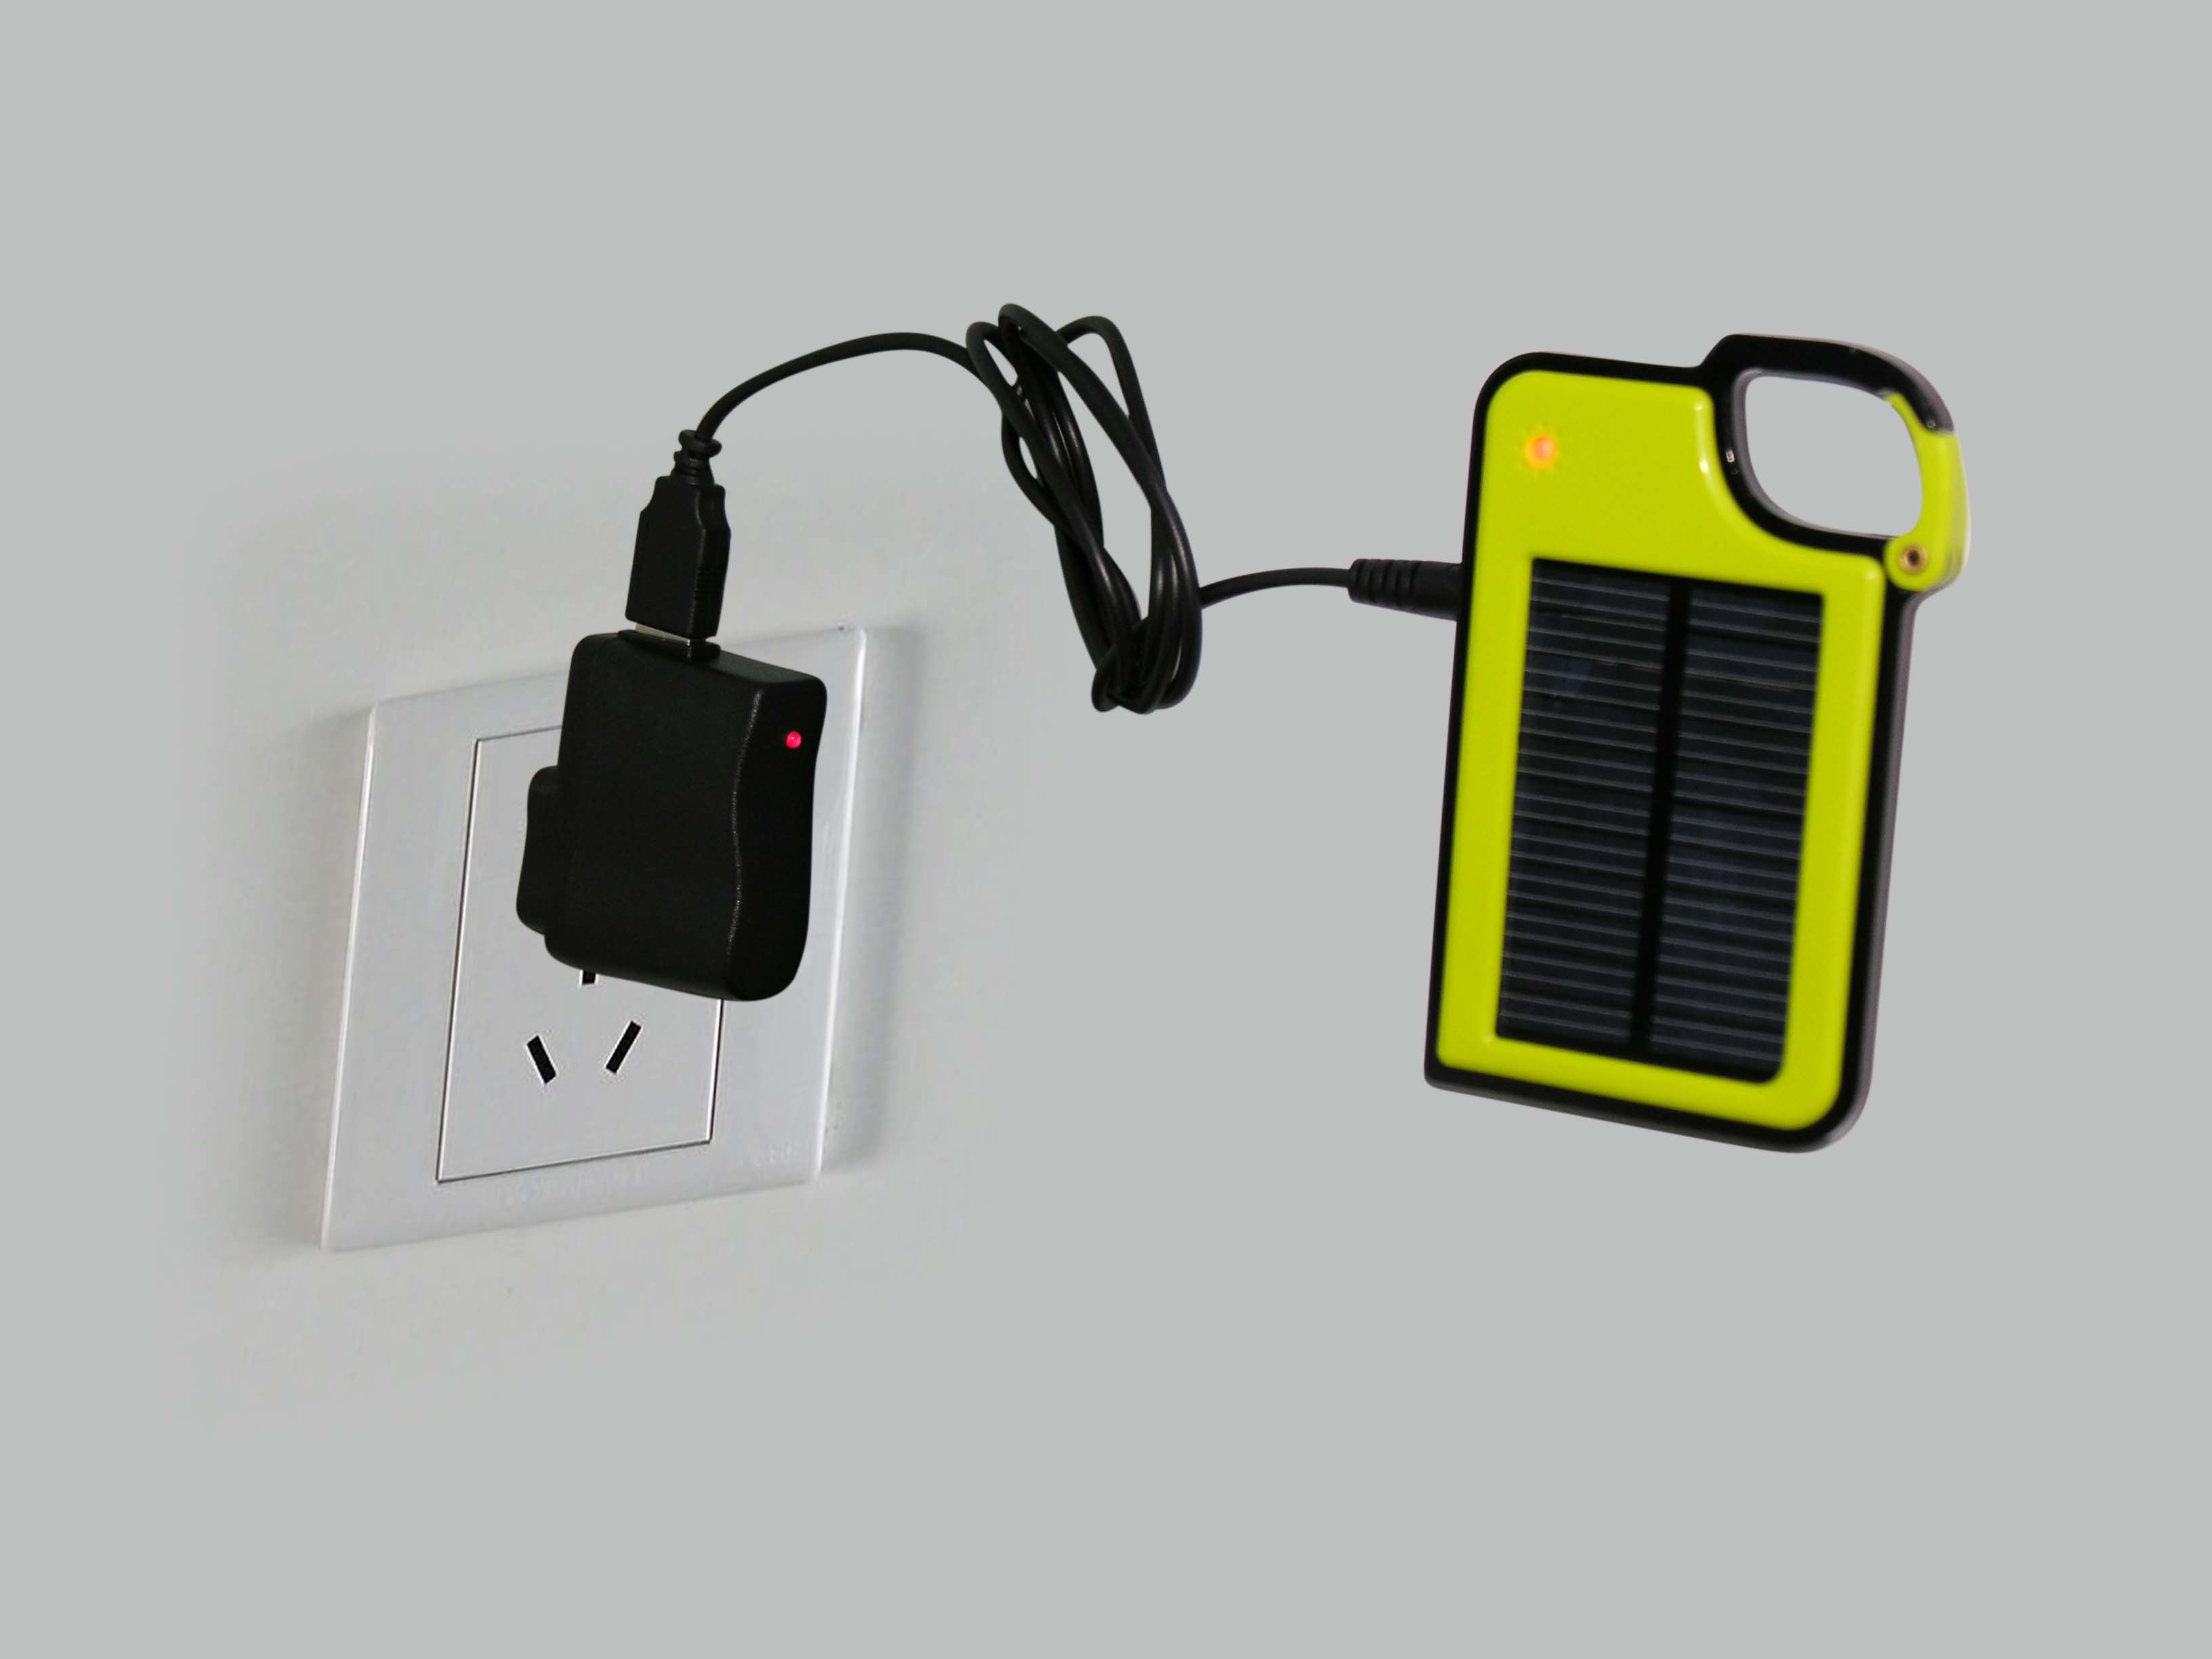 1300mAh Portable Solar Charger as Mobile Phone Accessories for iPhone 6